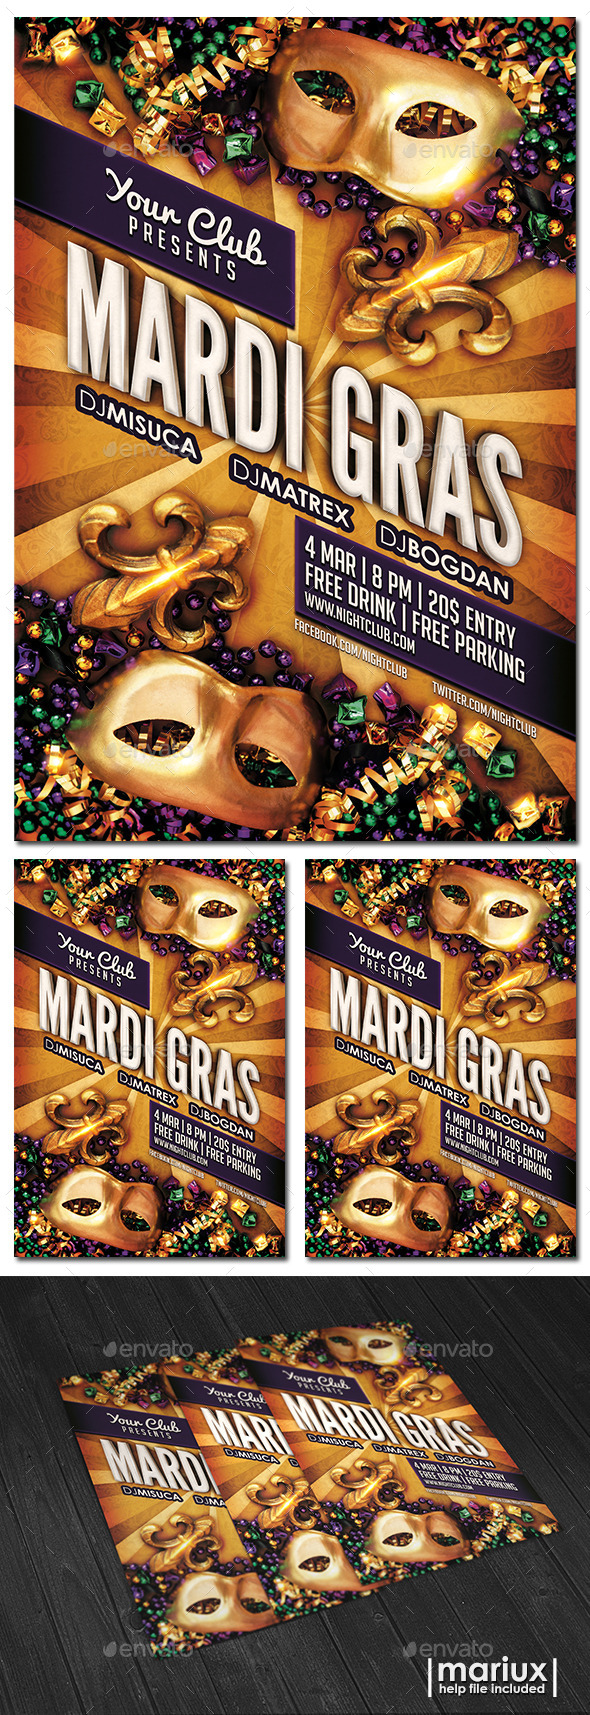 GraphicRiver Mardi Gras Party Flyer 9957452